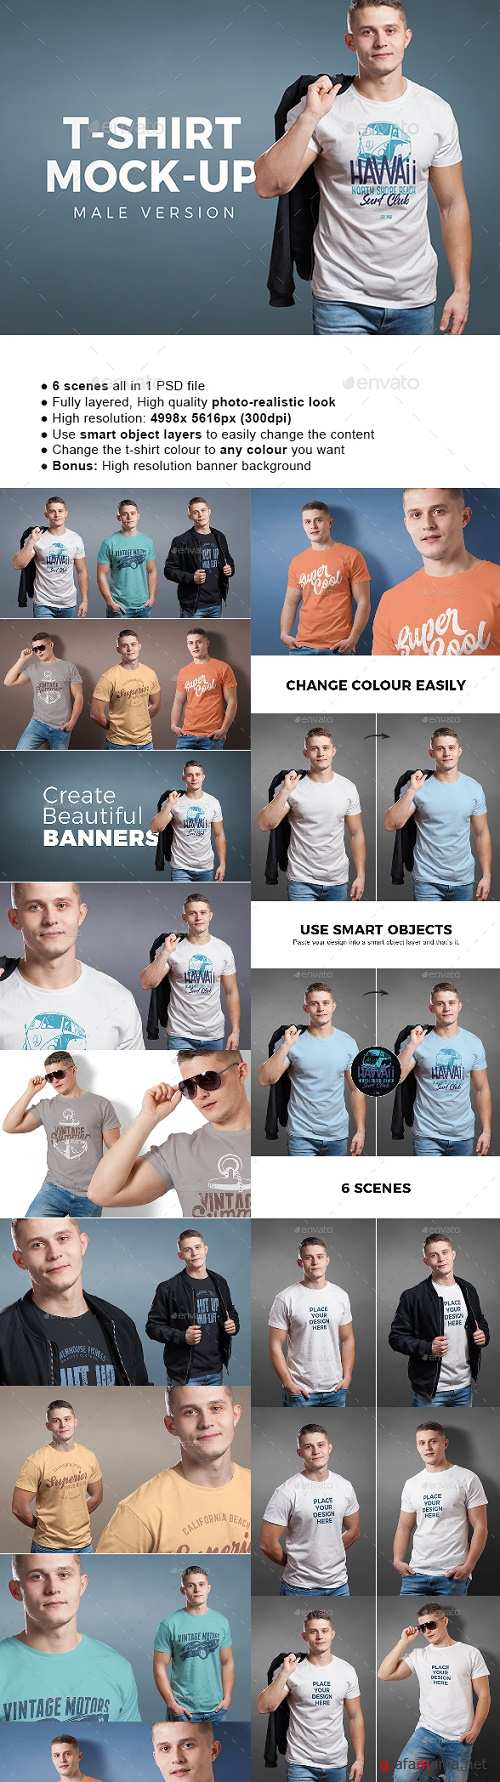 Male T-shirt Mock-up 22161321